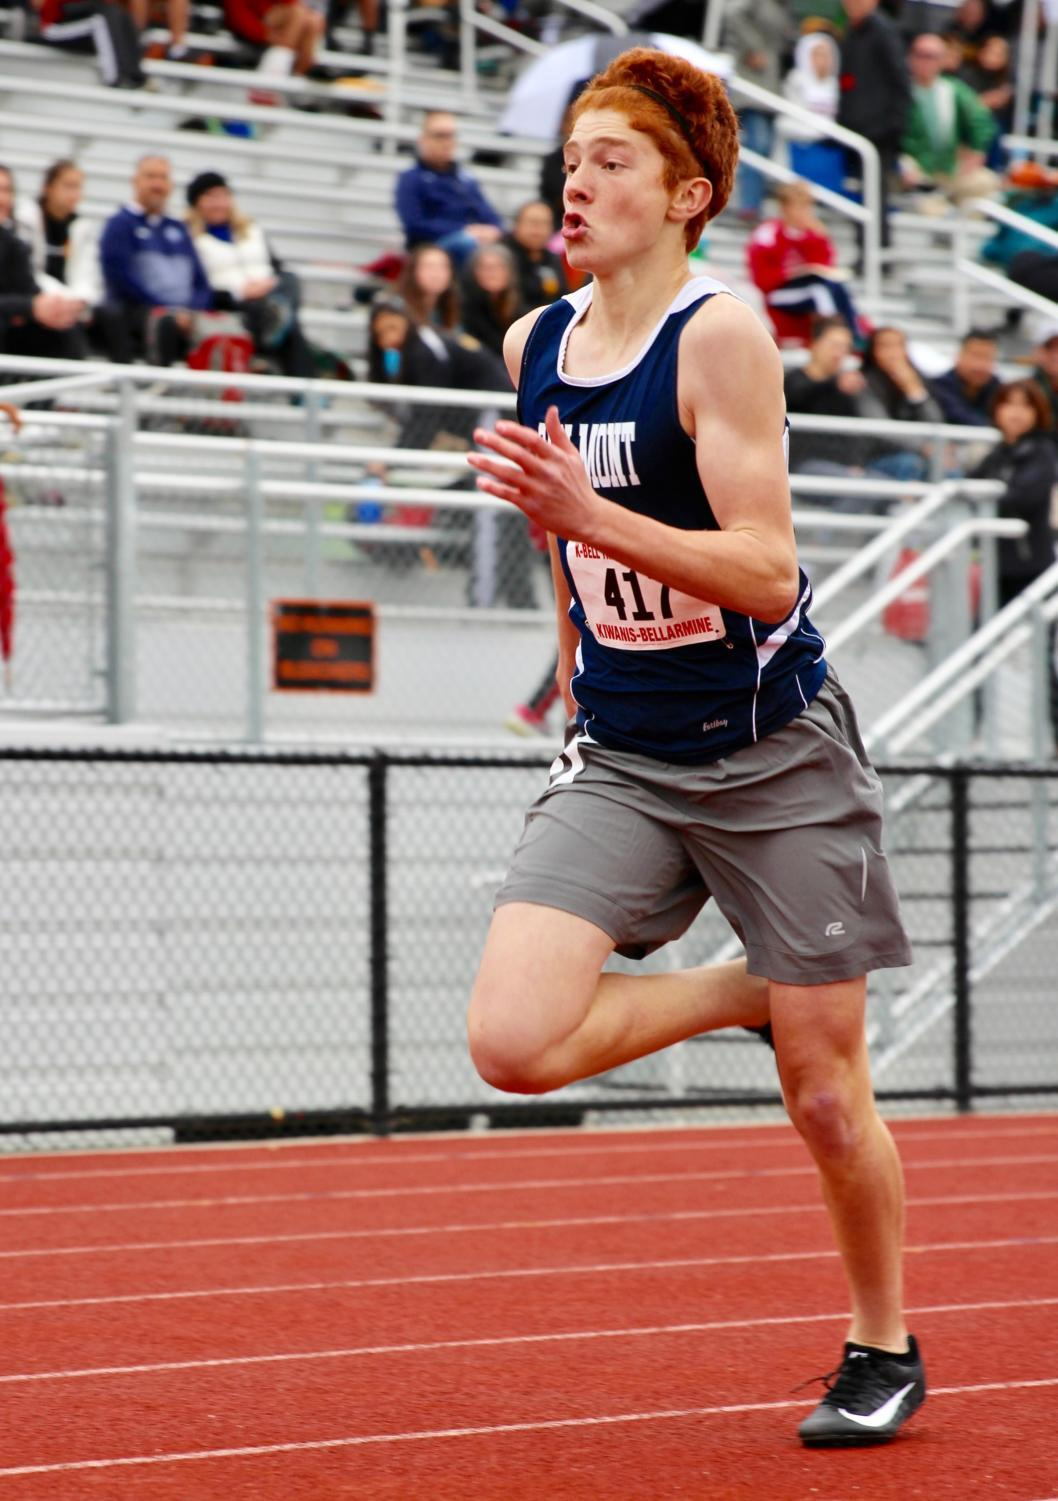 Patrik Geleziunas sprints to the finish line at the K-Bell Track and Field Classic at Los Altos High School.